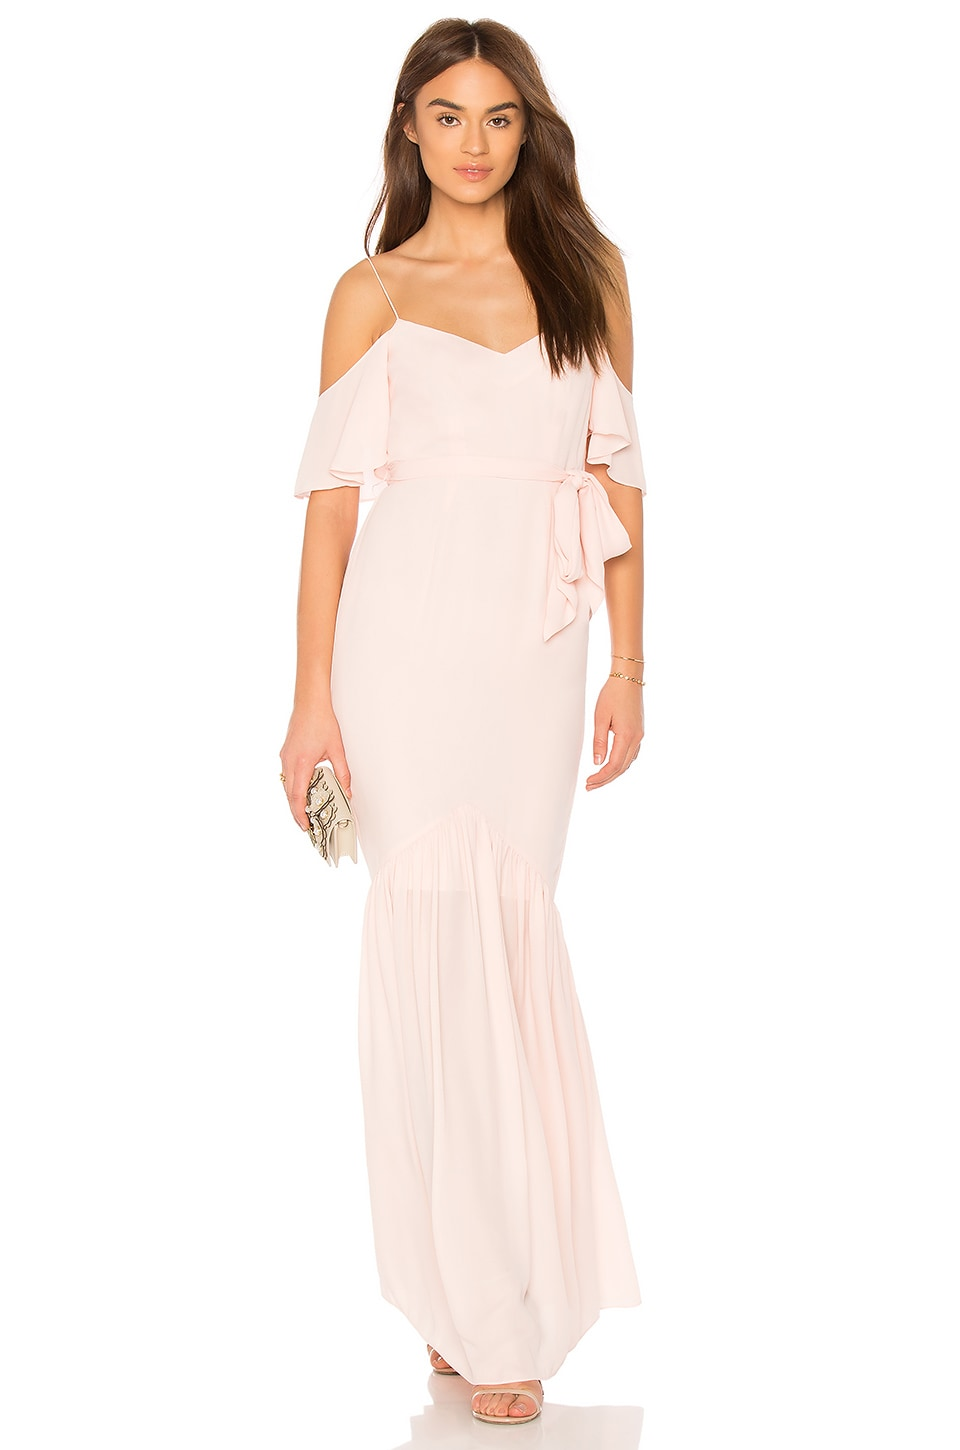 LIKELY x Revolve Emmy Bridesmaid Gown in Seashell Pink